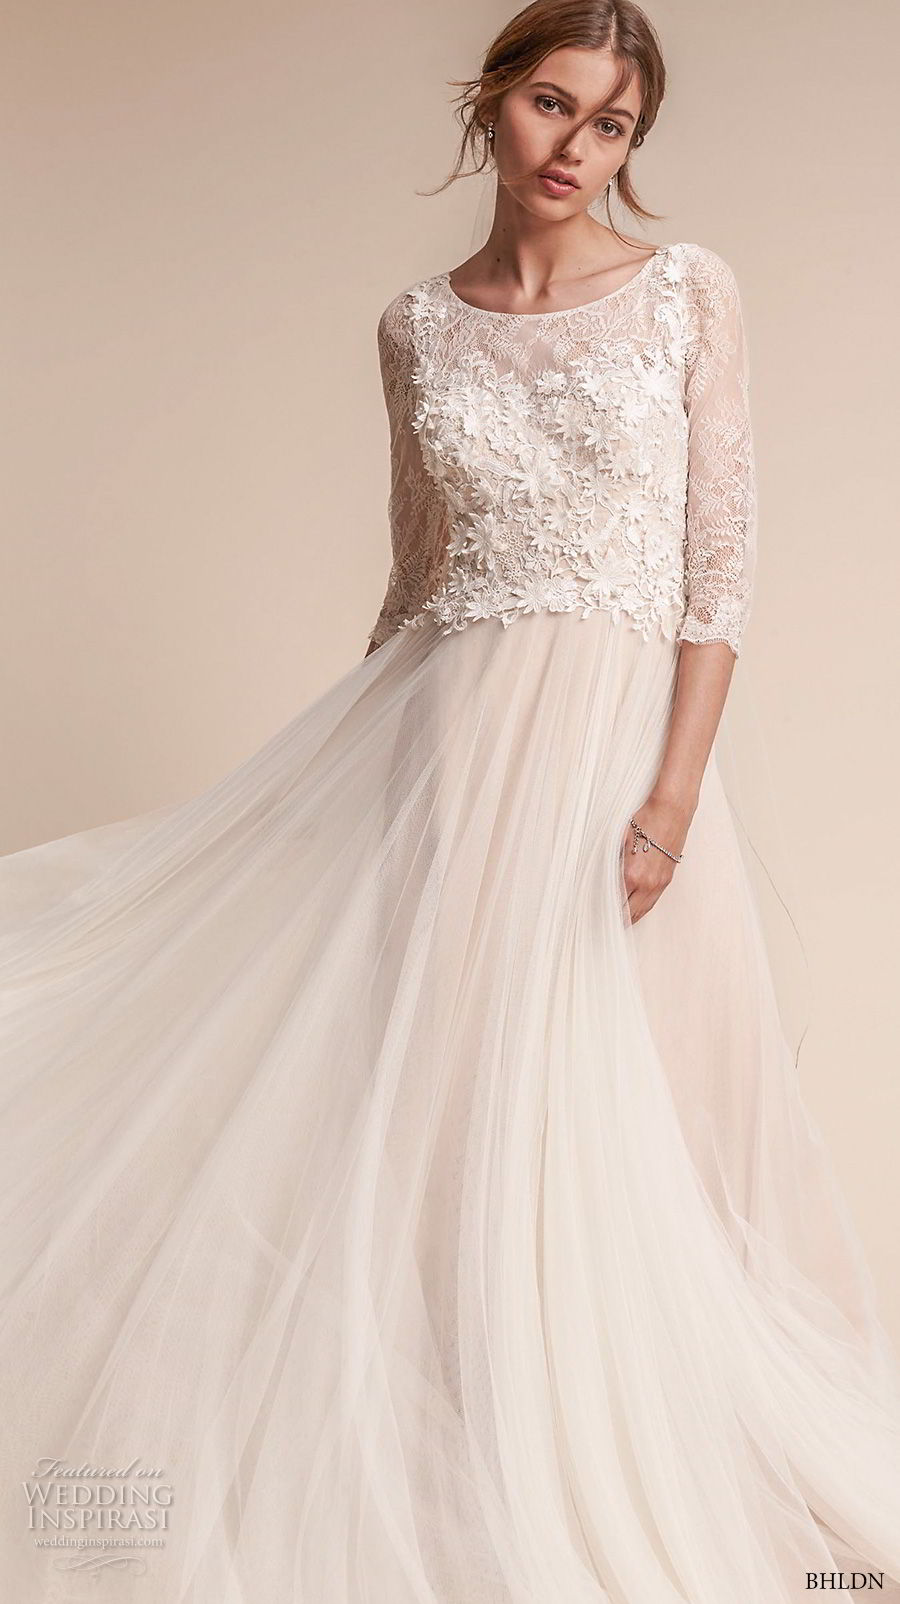 bhldn fall 2017  americana bridal three quarter sleeves bateau neck heavily embellished bodice tulle skirt romantic soft a  lne wedding dress covered lace back sweep train (amelia) mv